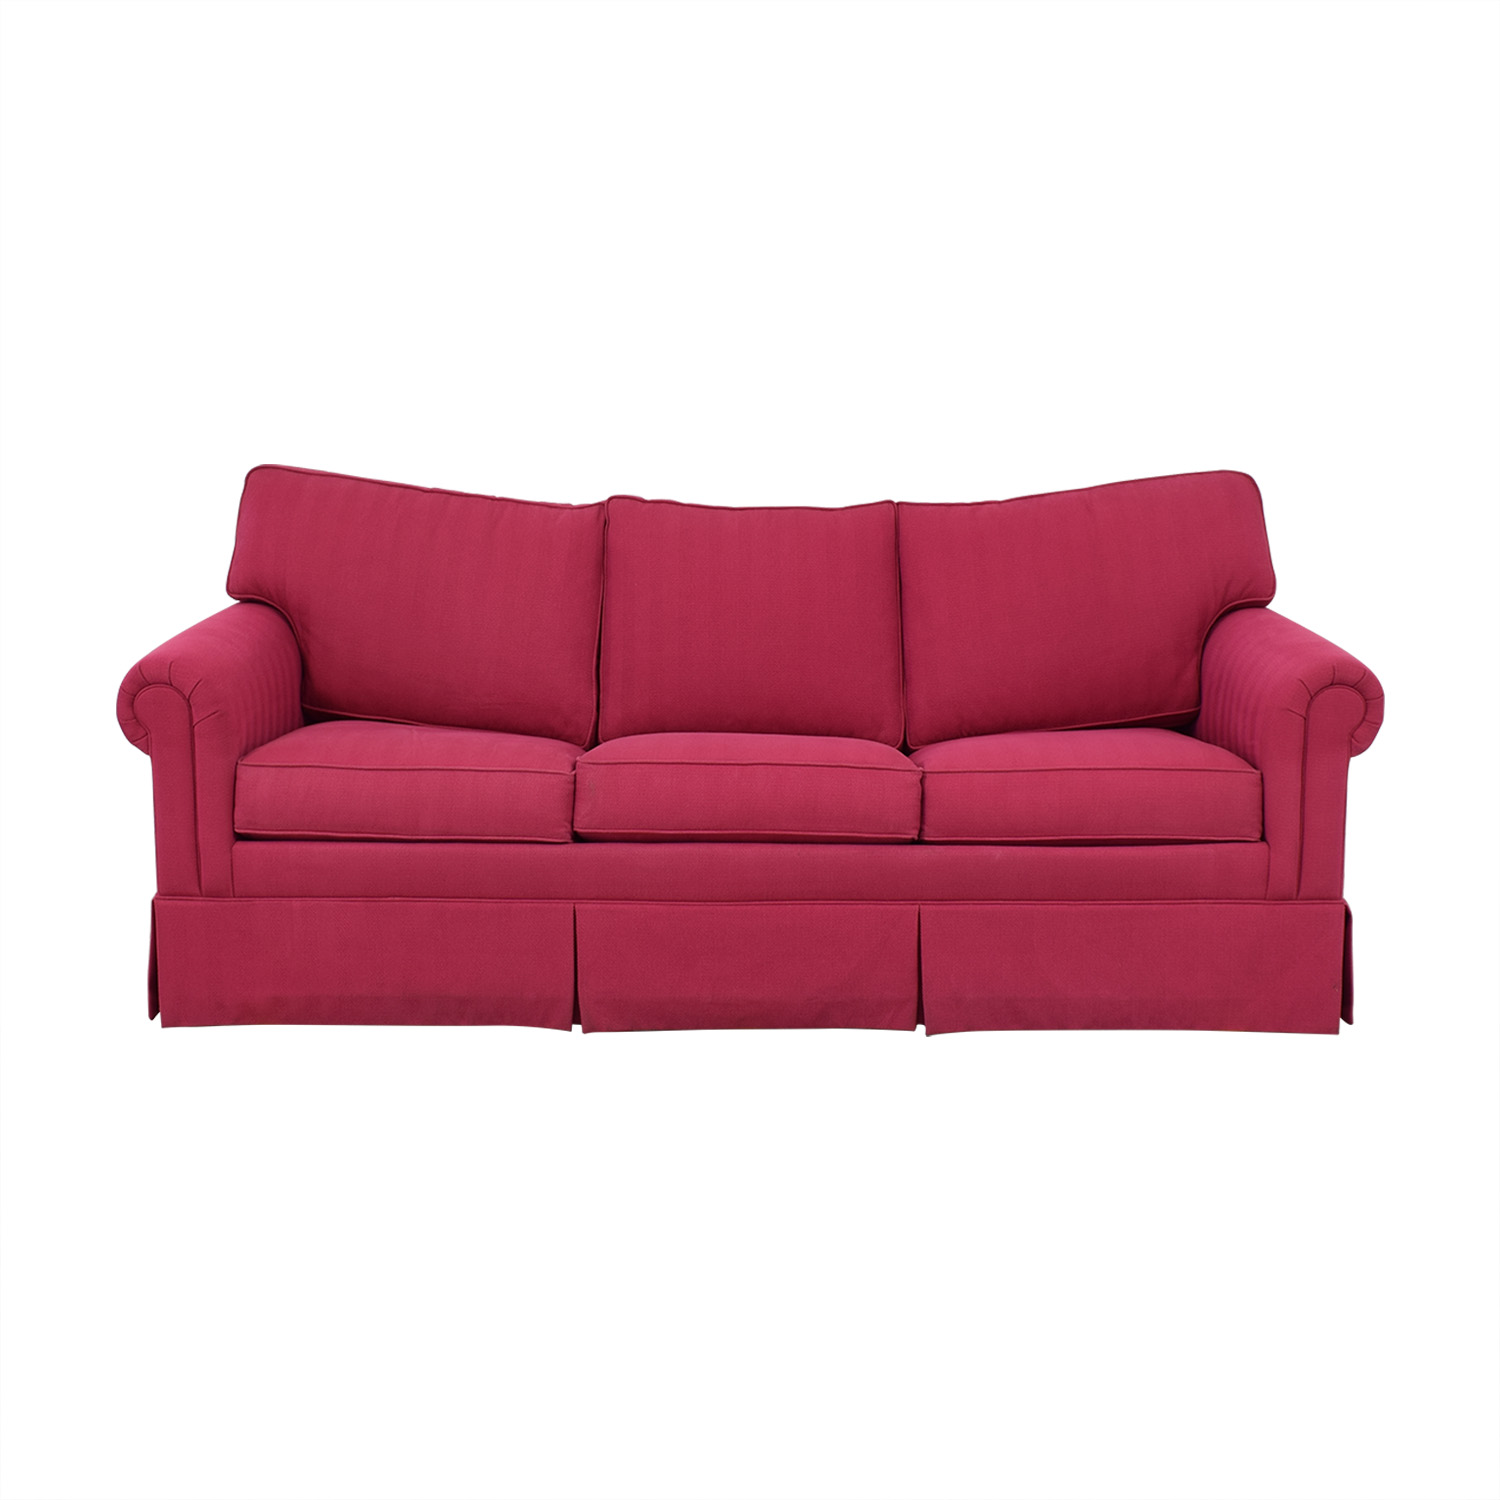 Ethan Allen Ethan Allen Sleeper Sofa on sale